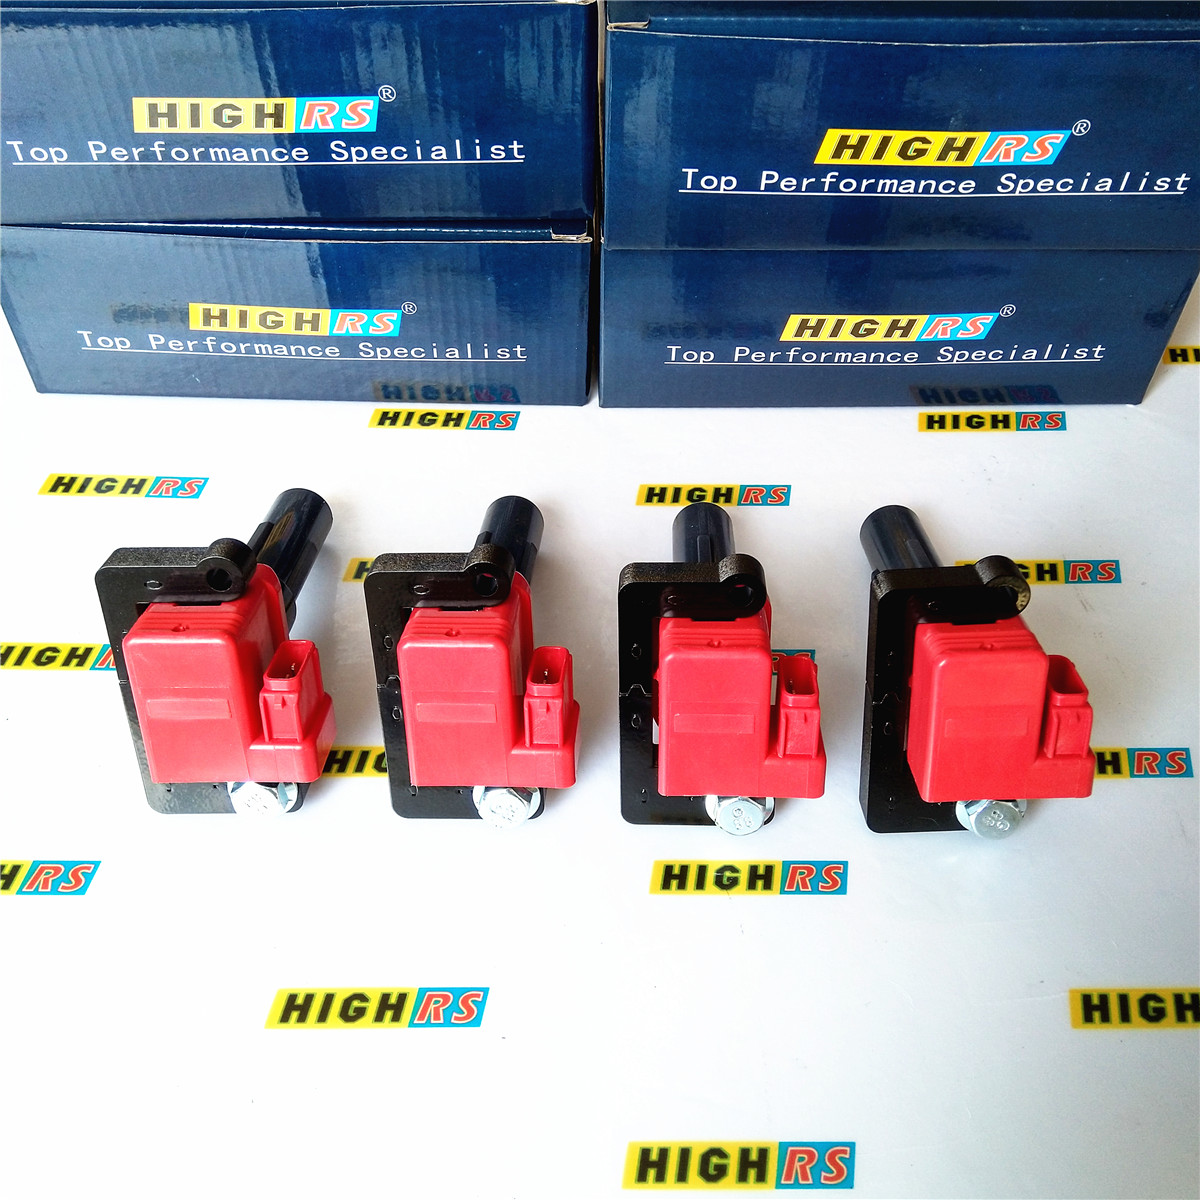 IGNITION COILS FIT SUBARU Forester Impreza Wrx Sti Outback Legacy Gt EJ255 EJ257 Turbo COIL PACKS